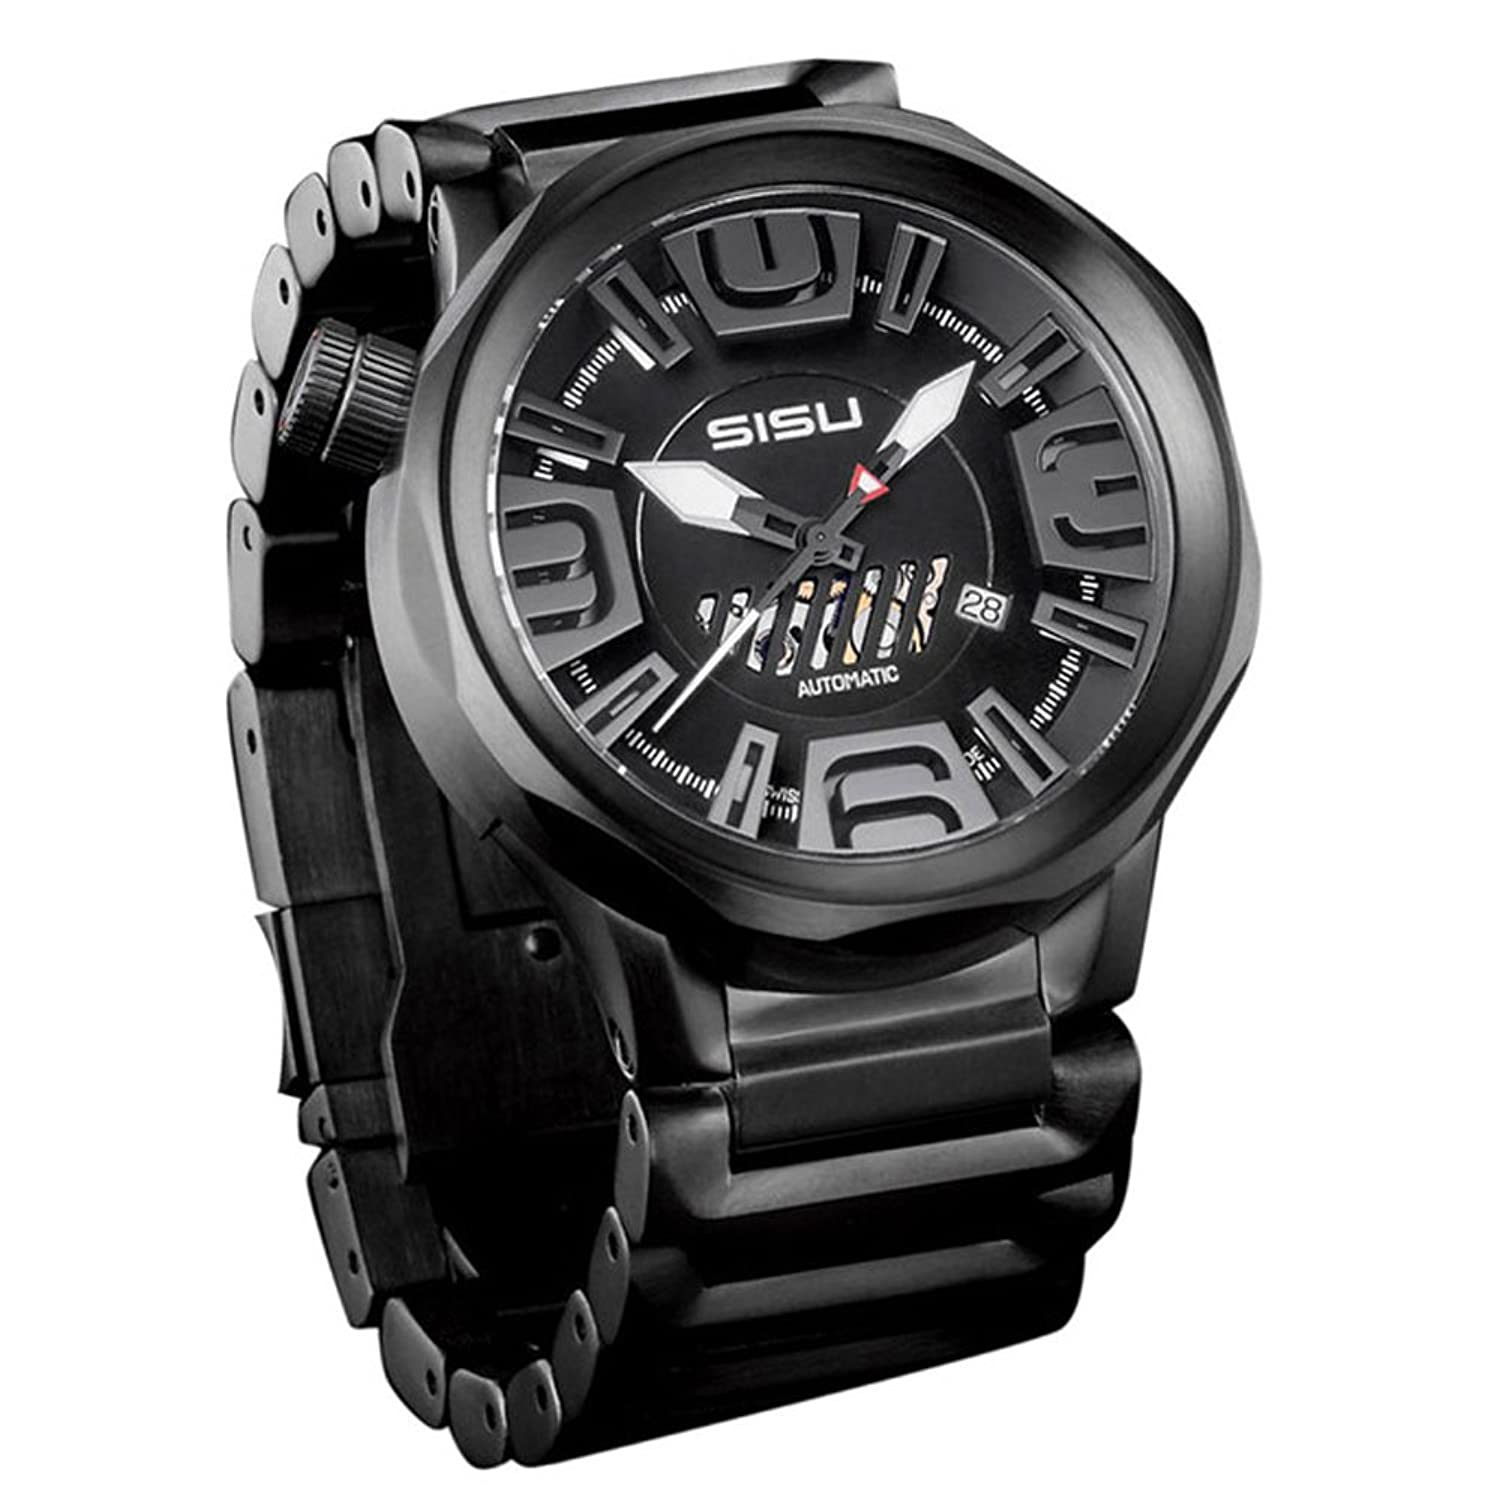 products watch studio avant pvd pure lane black collection south watches london